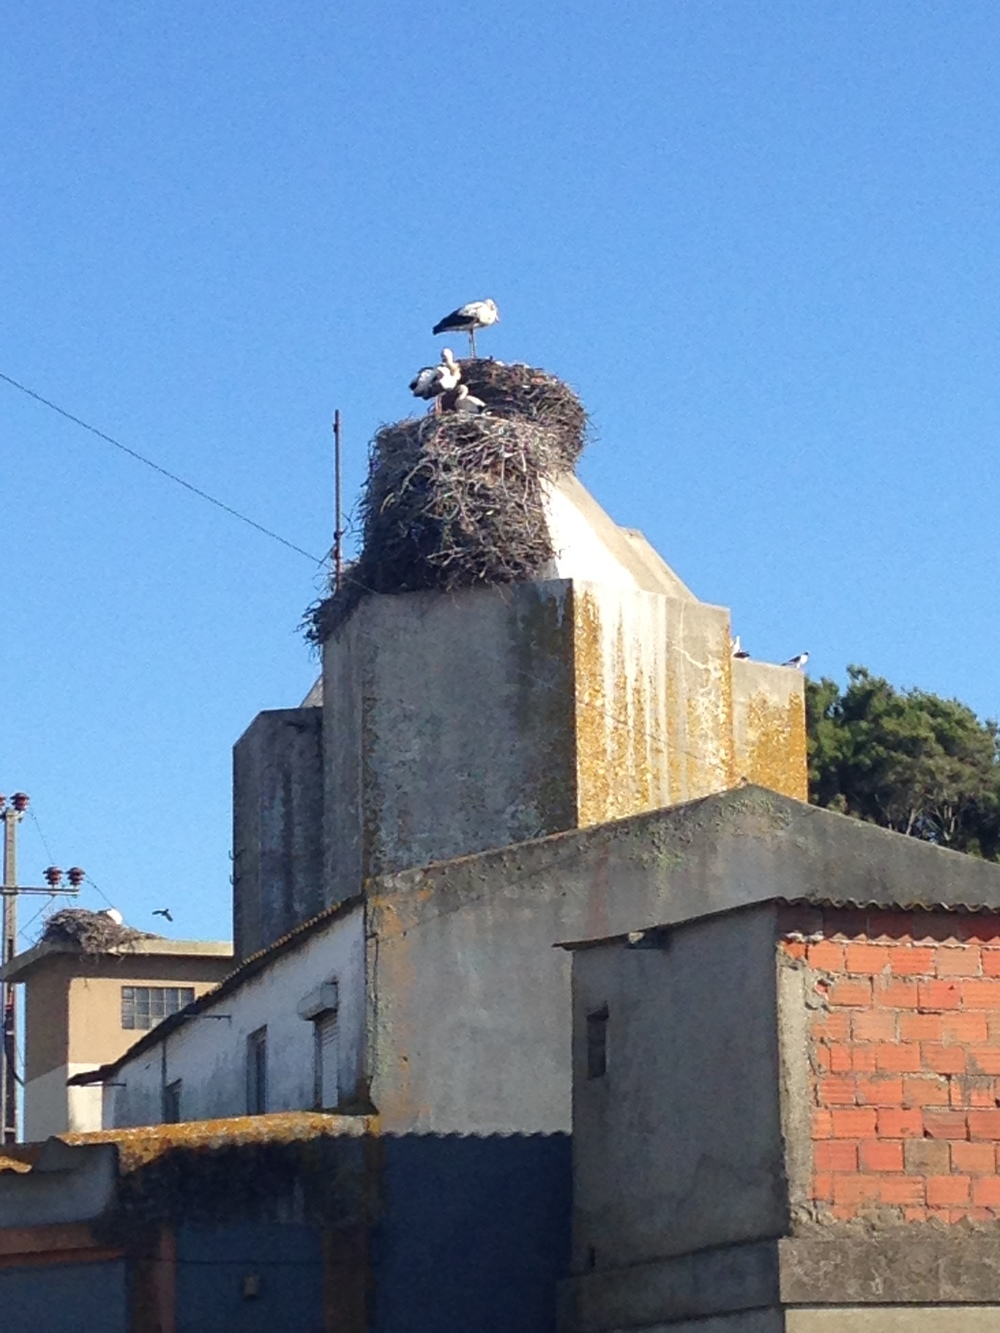 Storks nest at Comporta (06/2014)